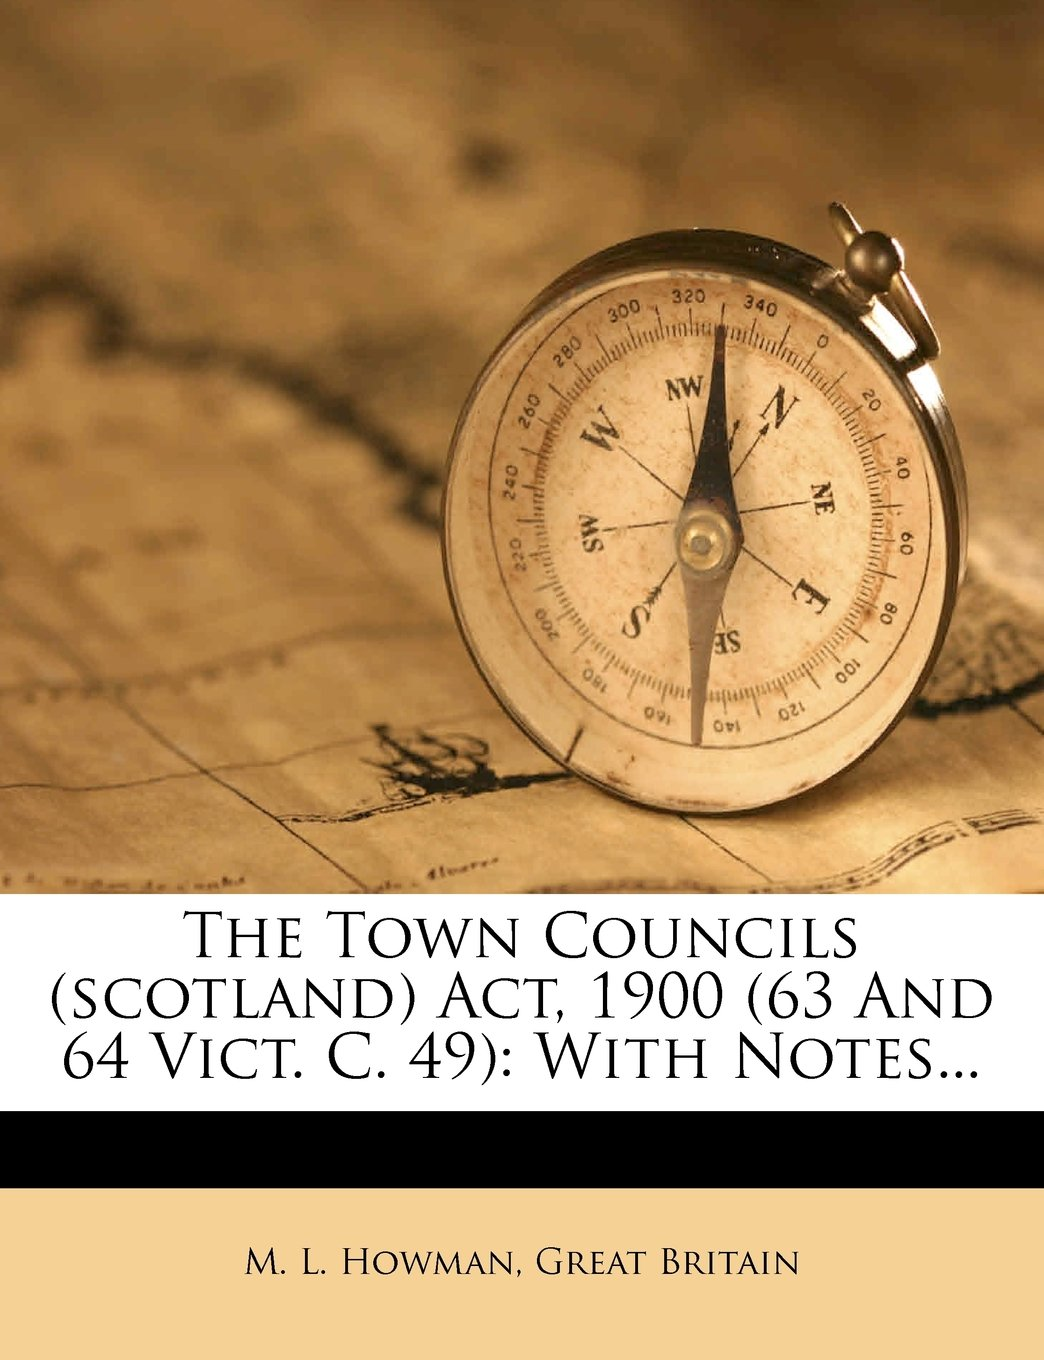 Download The Town Councils (scotland) Act, 1900 (63 And 64 Vict. C. 49): With Notes... ebook